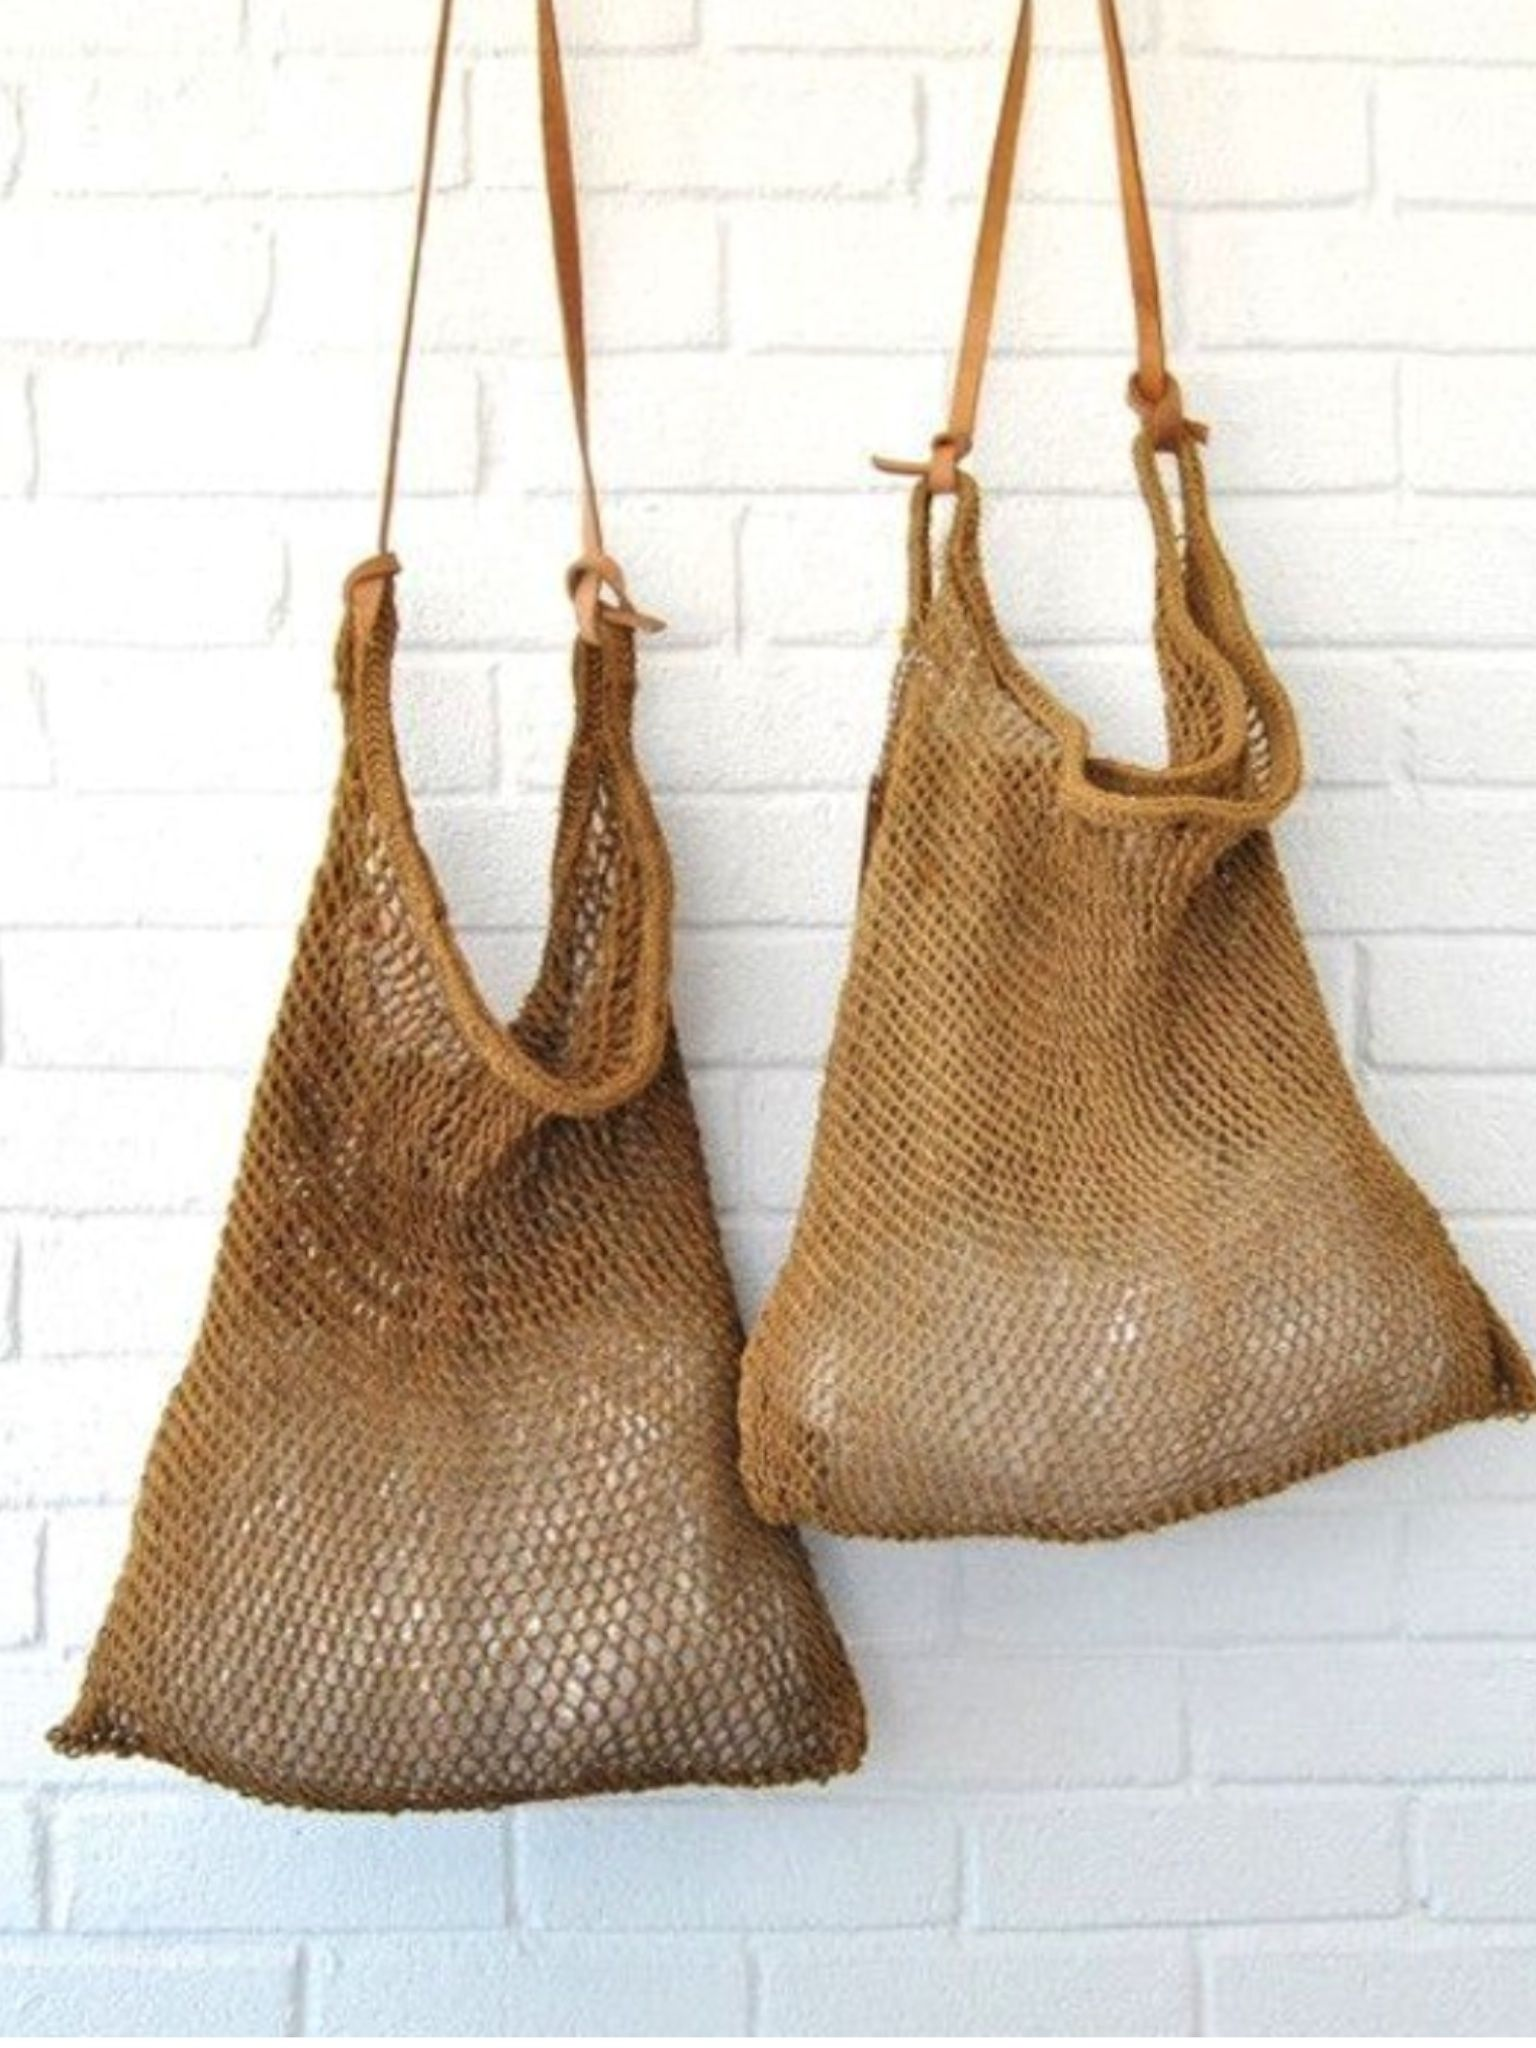 Fashionable knitted bags of this season